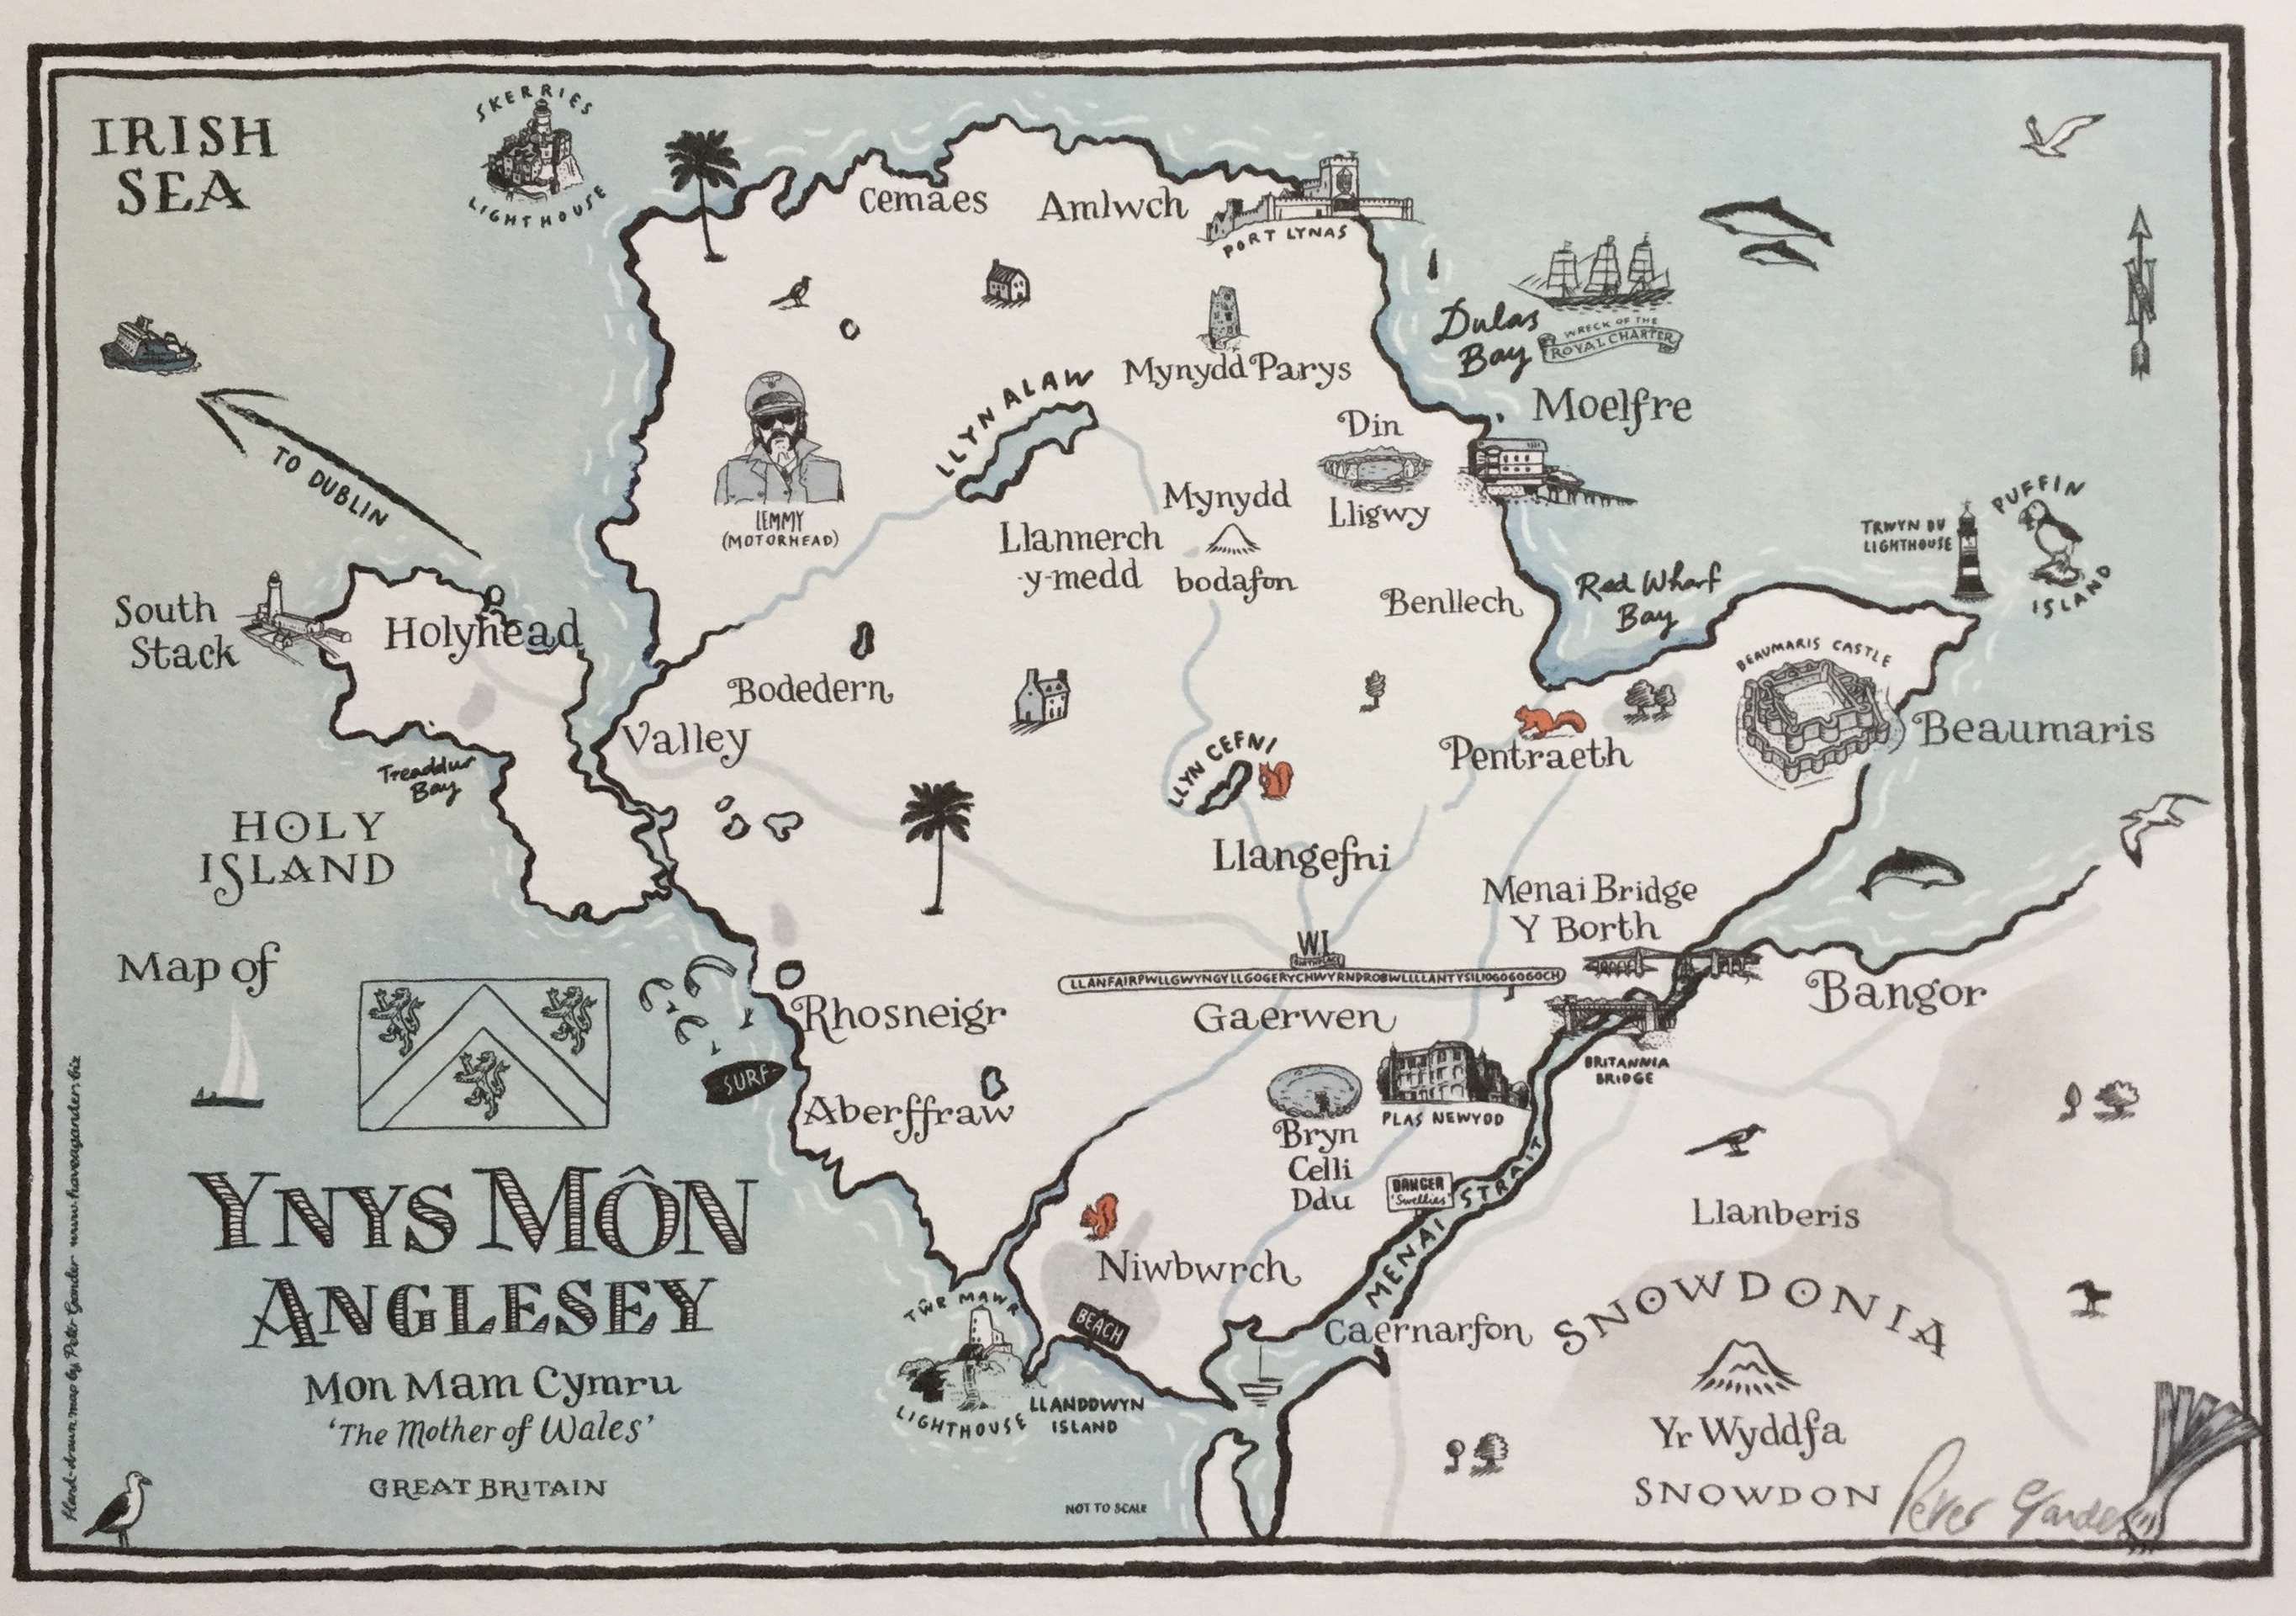 Anglesey map